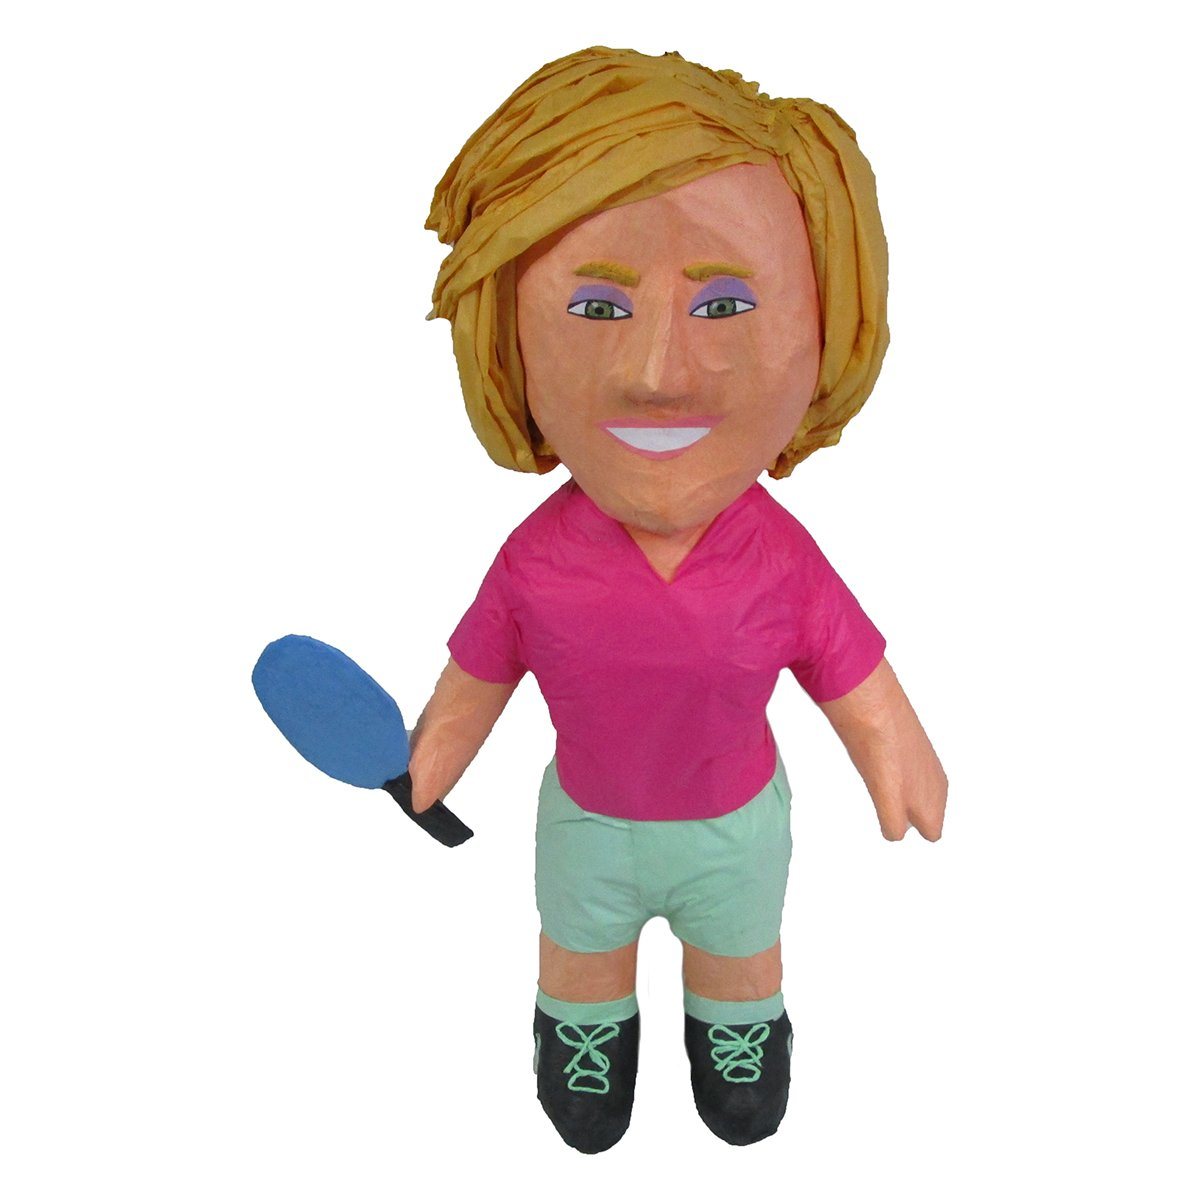 CUSTOM PING PONG PLAYER PINATA